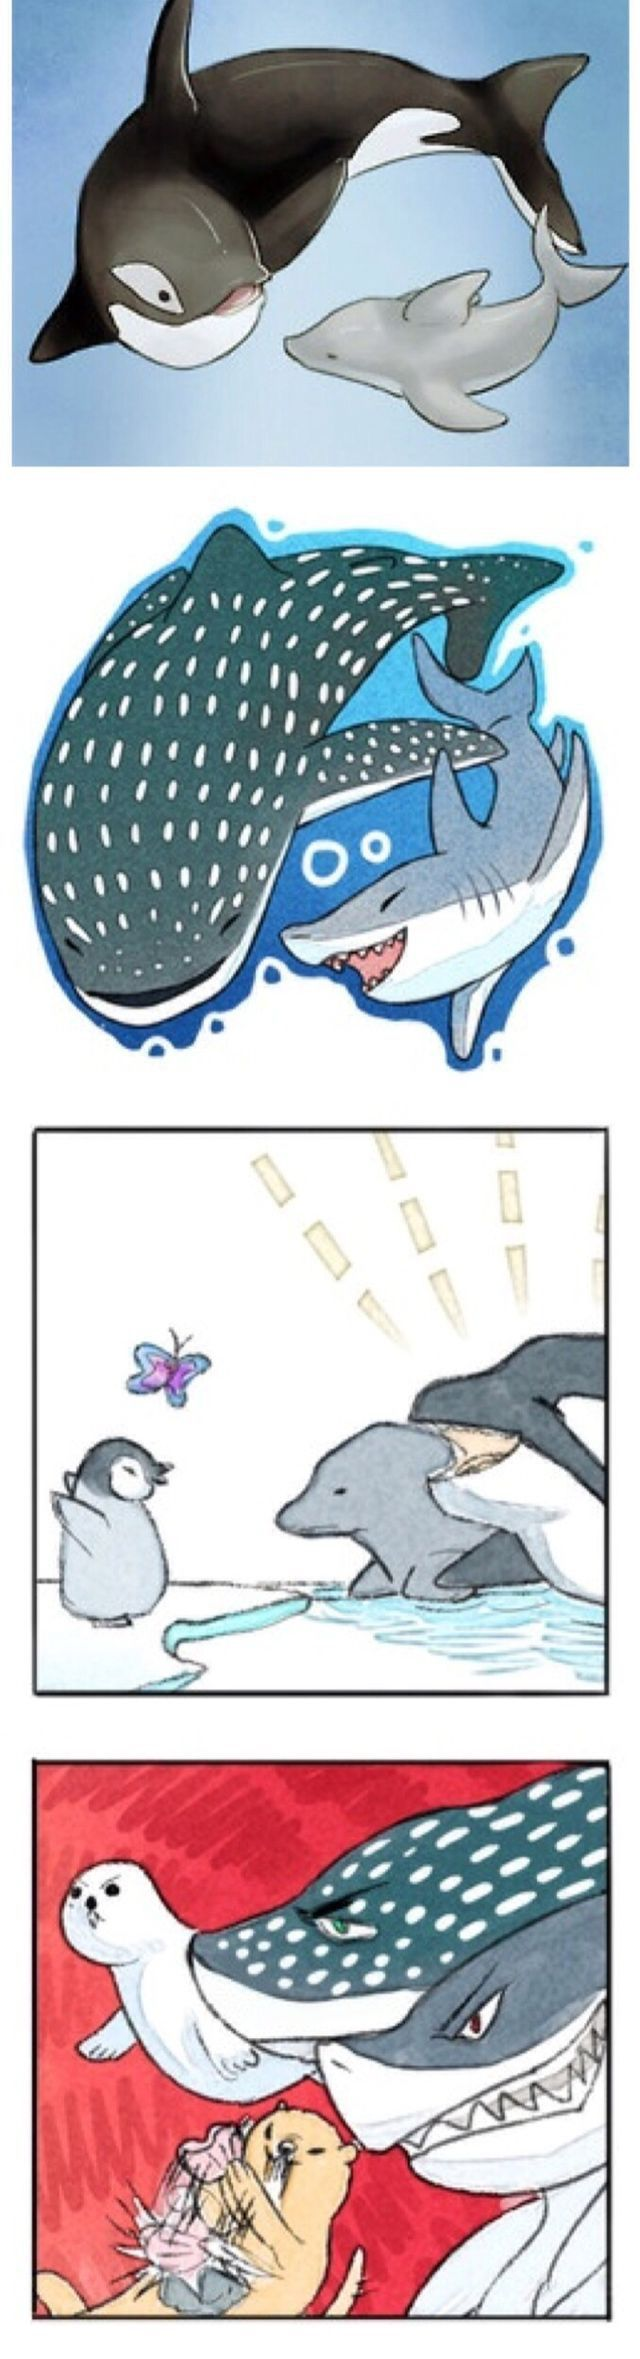 Sousuke as spotted shark thing rin as shark, momo is idk haru is dolphin makoto is killer whale nagisa as penguin rei as butterfly and nitori as seal?